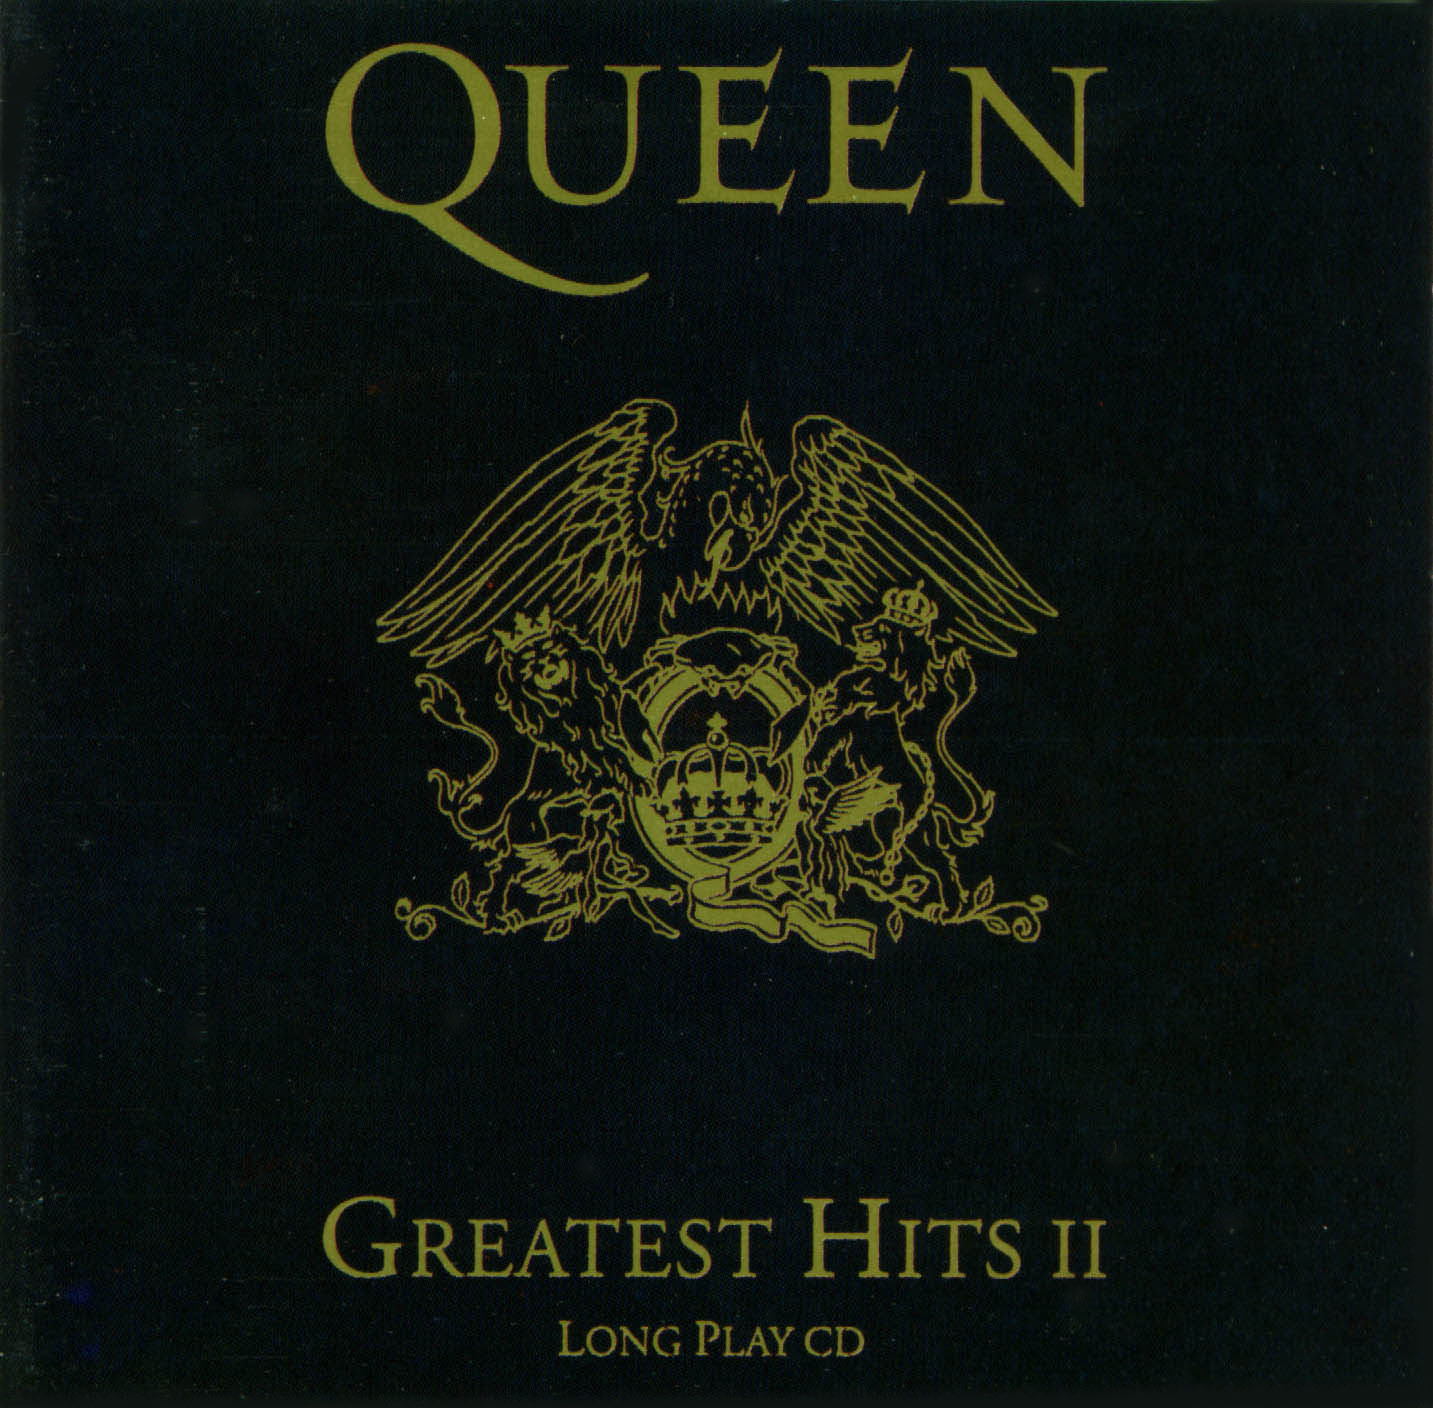 queen greatest hits 3 - photo #17